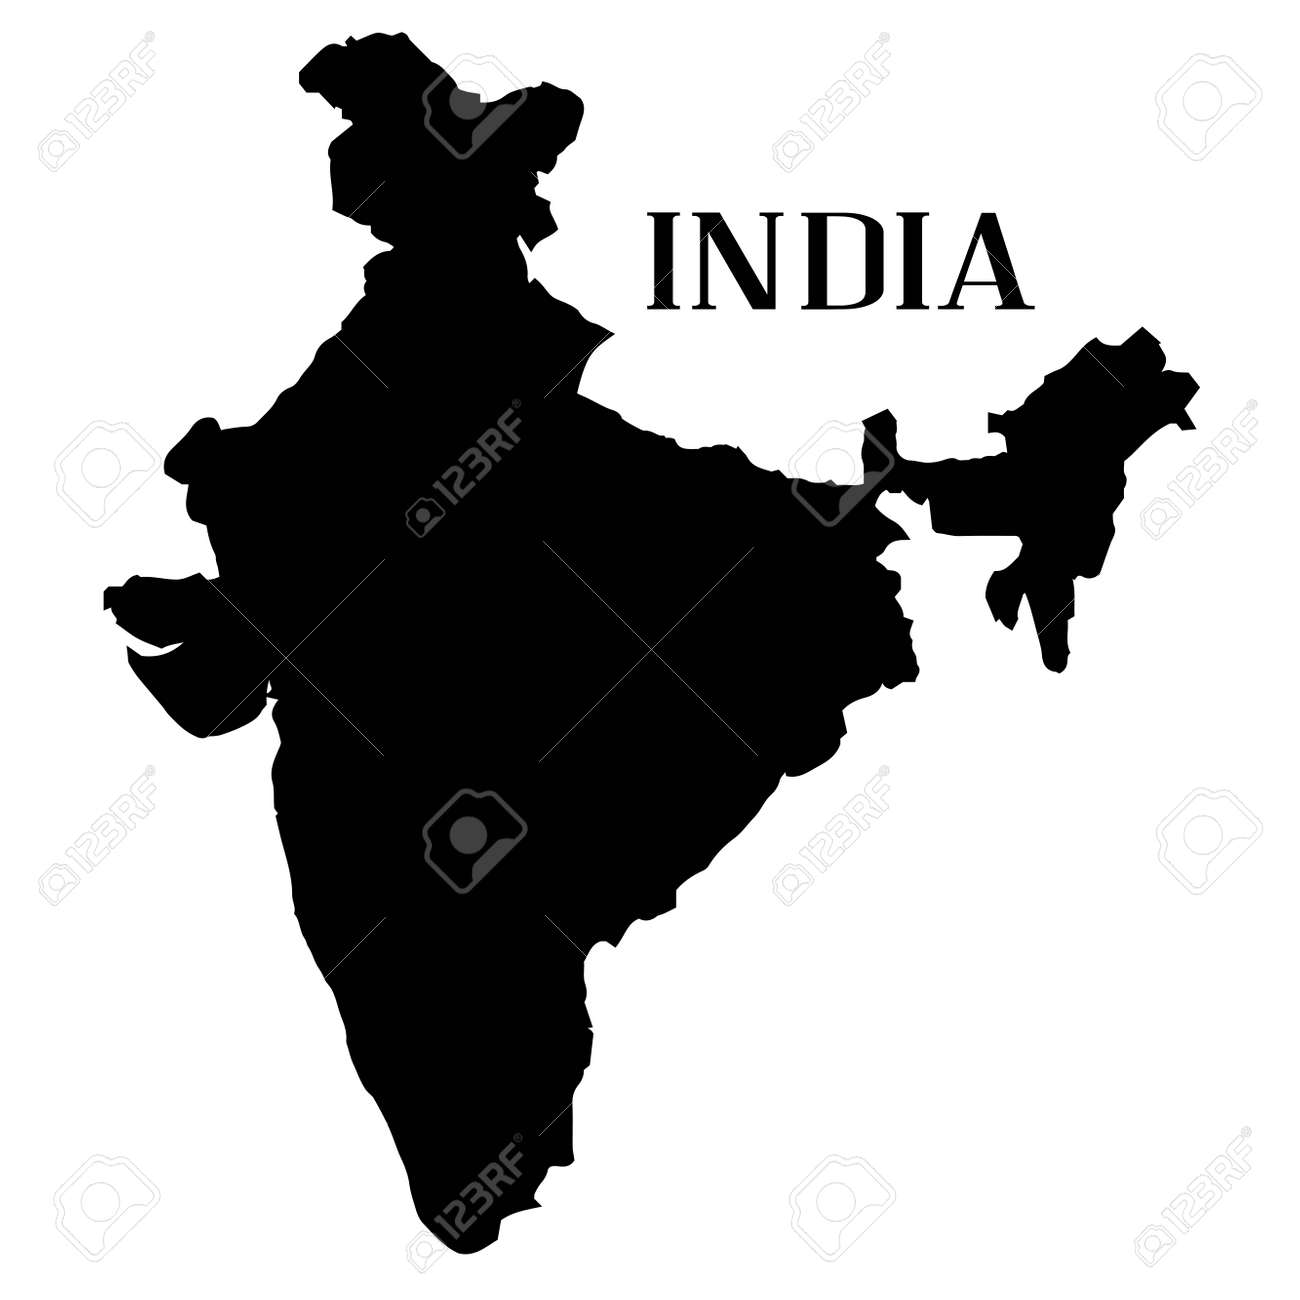 Outline Map Of India In Silhouette On A White Background Royalty - Map silhouette